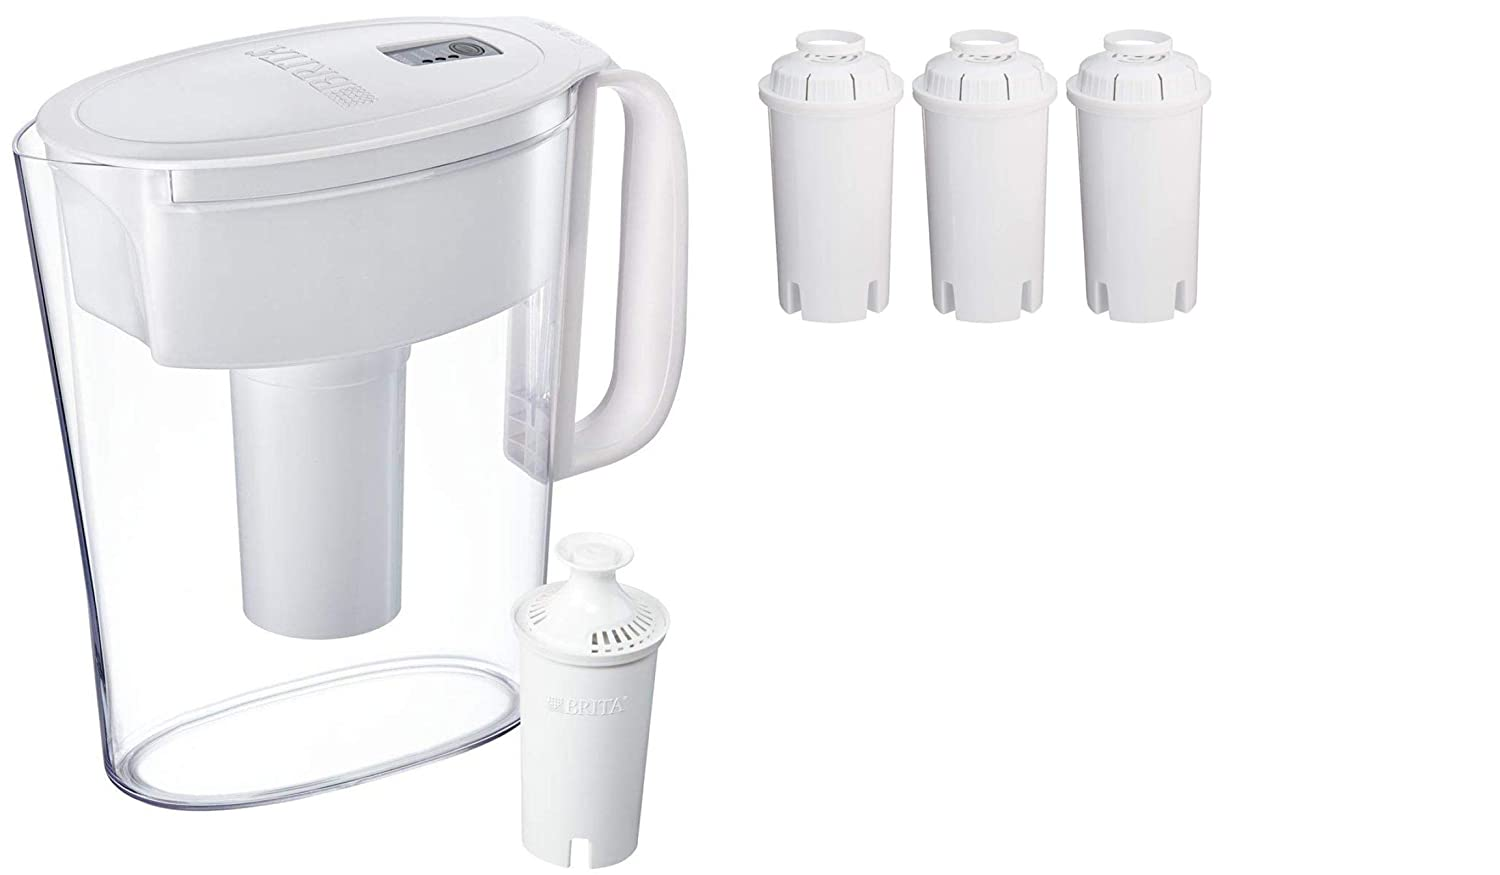 Brita 5 Cup Water Filter Pitcher (Pitcher with 4 Filters)